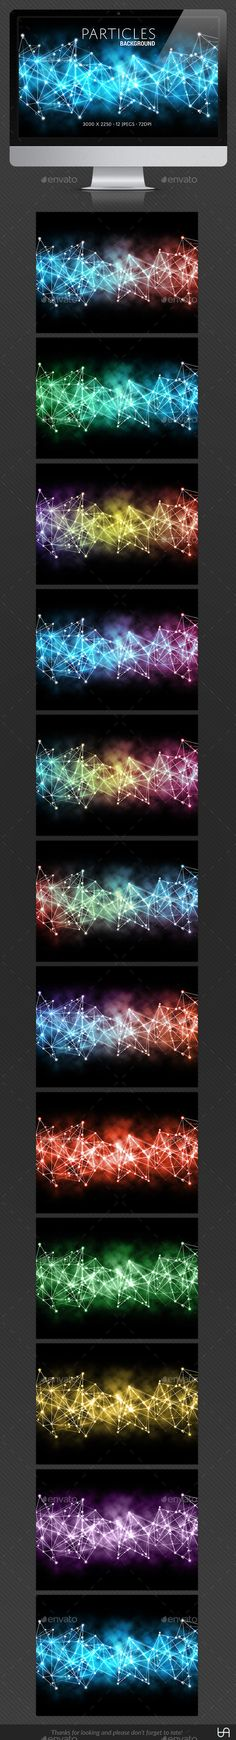 Particles Backgrounds by tracieandrews Particles Backgrounds A set of 12 abstract backgrounds in various colours.3000px x 2250px 72 dpi 12 JpegsThanks for looking and pl